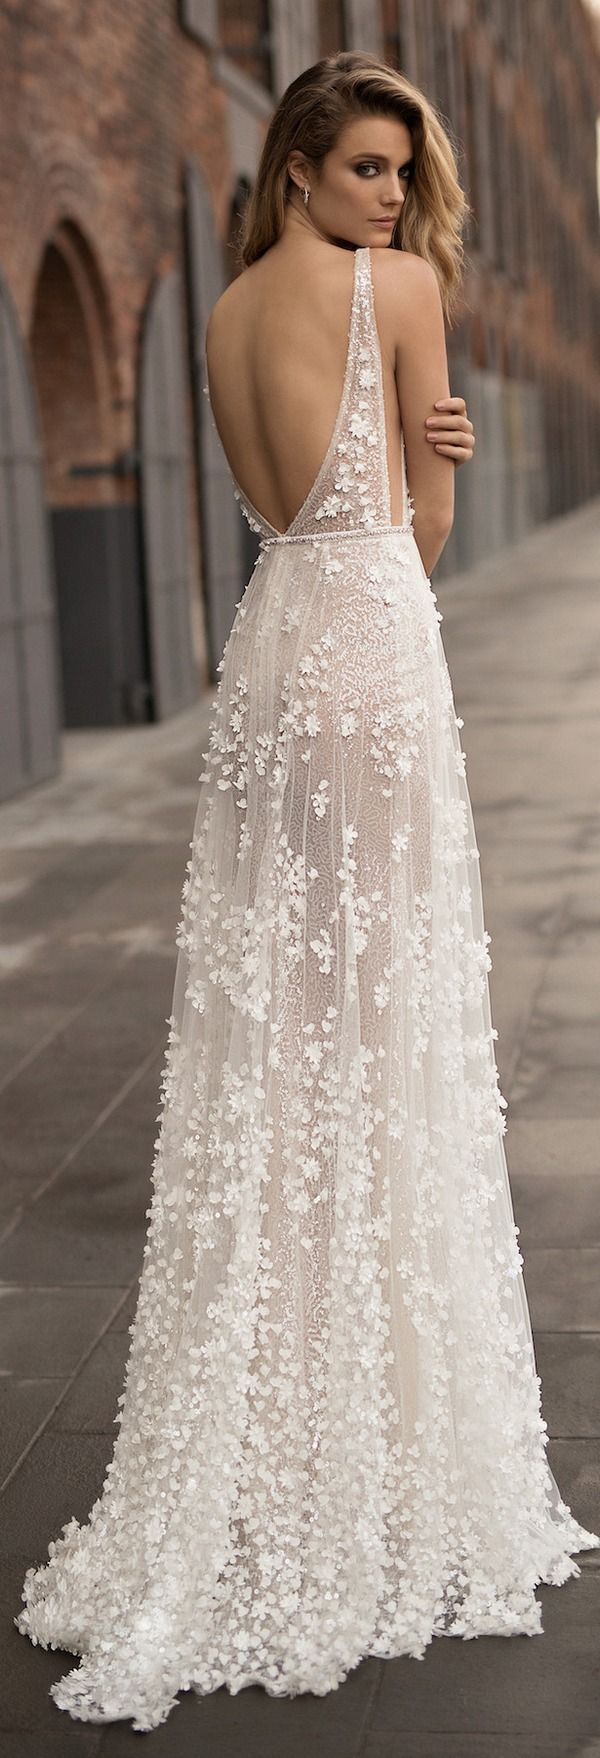 Best 25+ Designer wedding dresses ideas on Pinterest | Berta ...